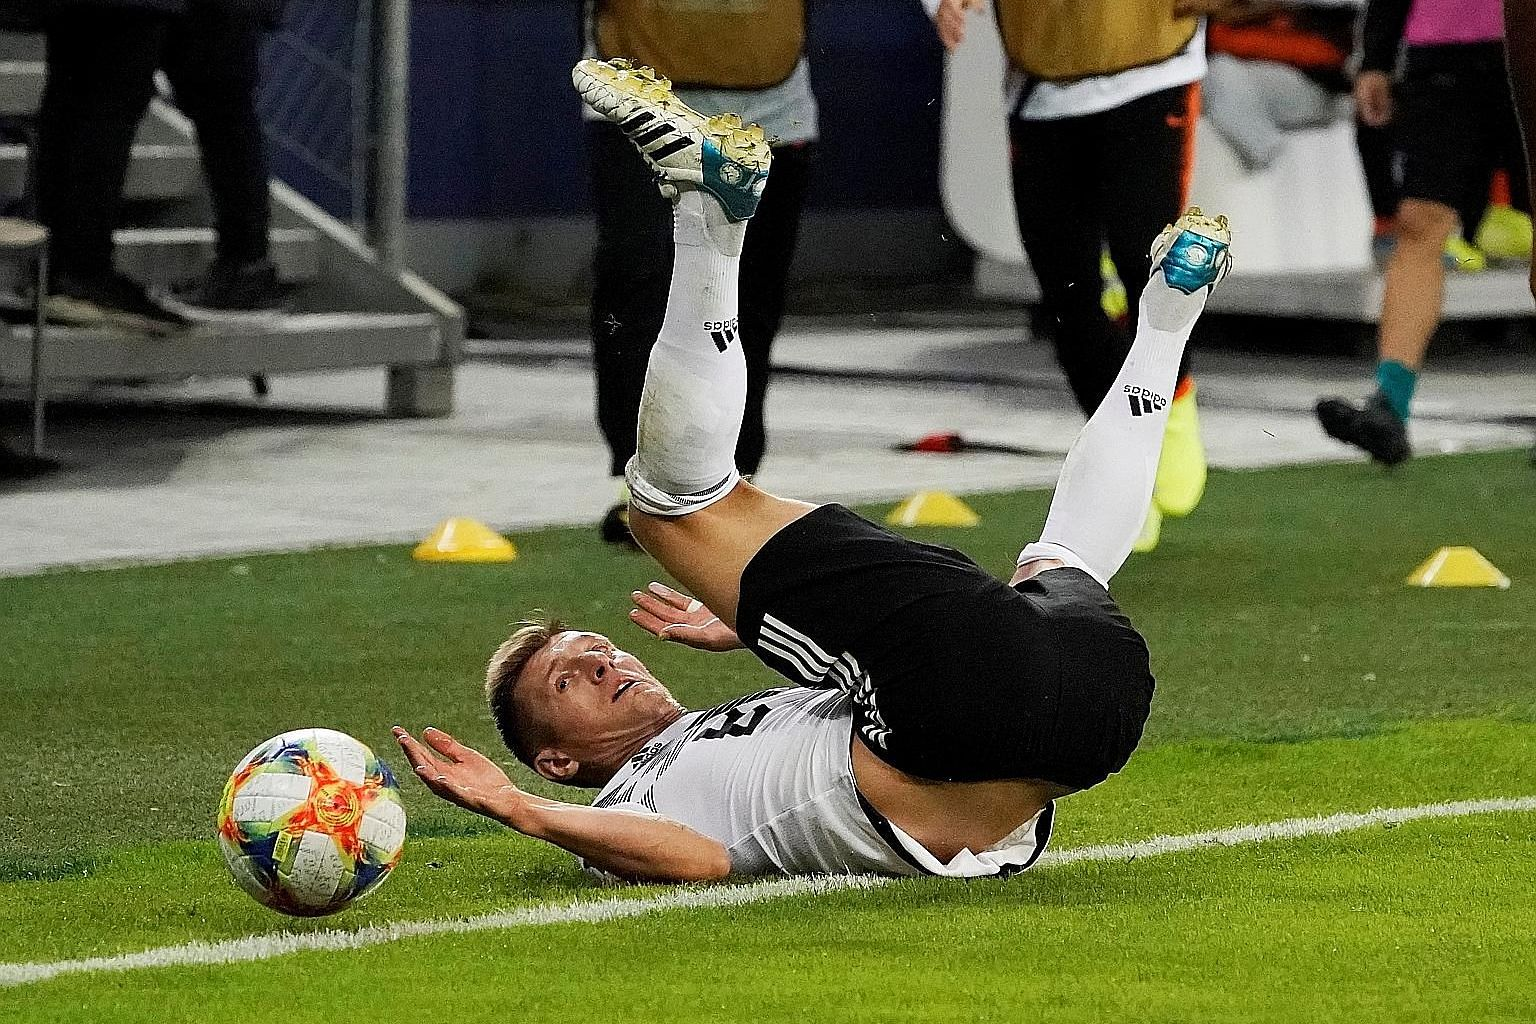 Germany's Toni Kroos seems at a loss for ideas during last Friday's 4-2 defeat by the Netherlands. Coach Joachim Low knows his team need to leave the pitch as winners against Group C leaders Northern Ireland today.